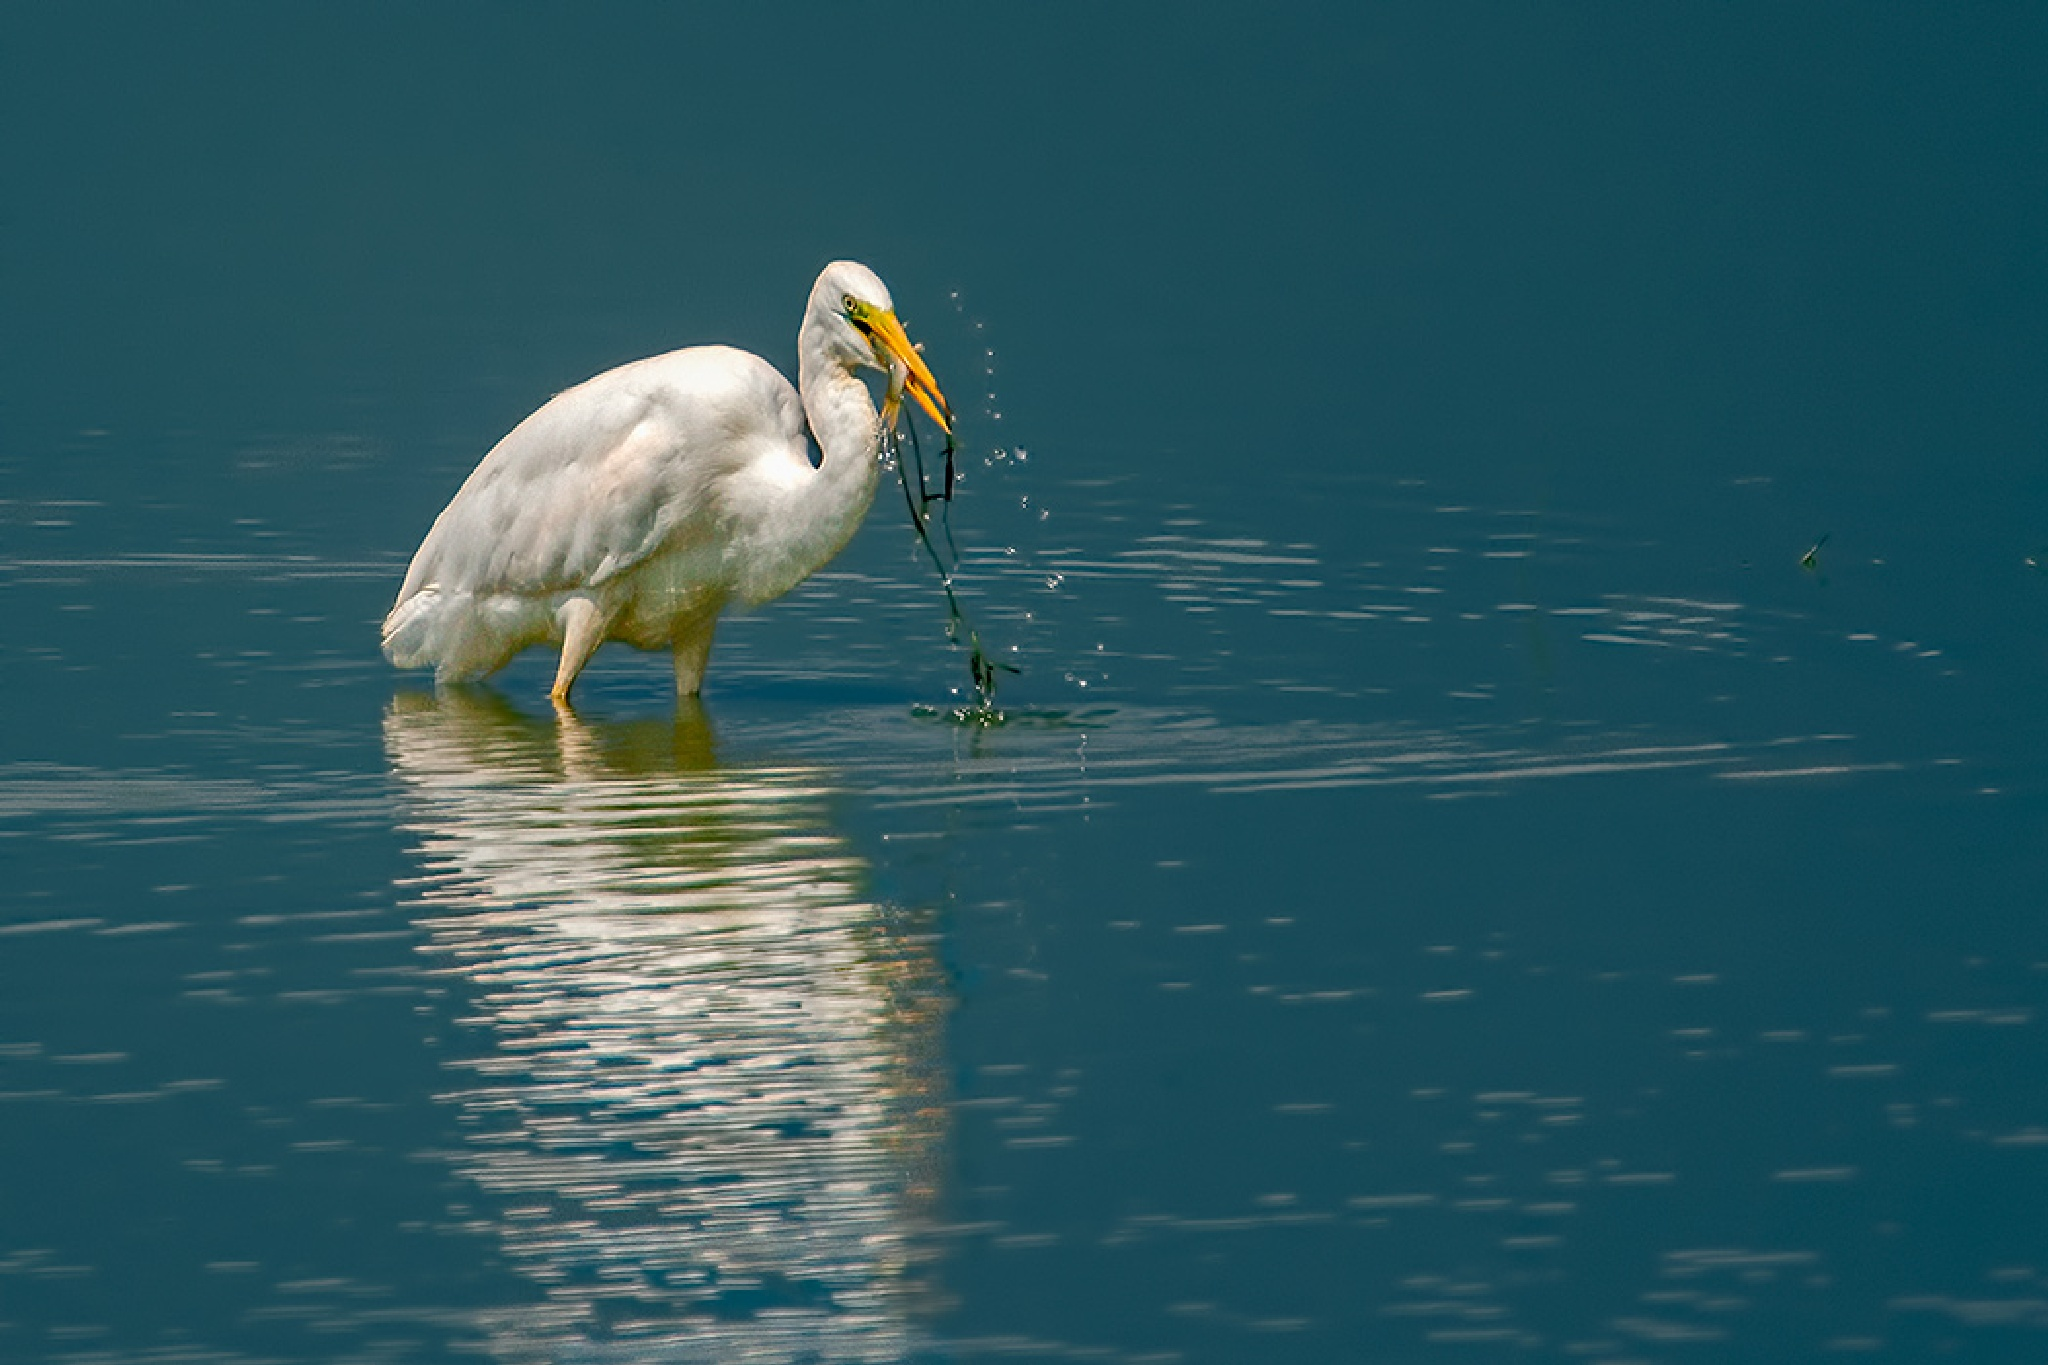 The great egret (Ardea alba)   by Sotiris Siomis